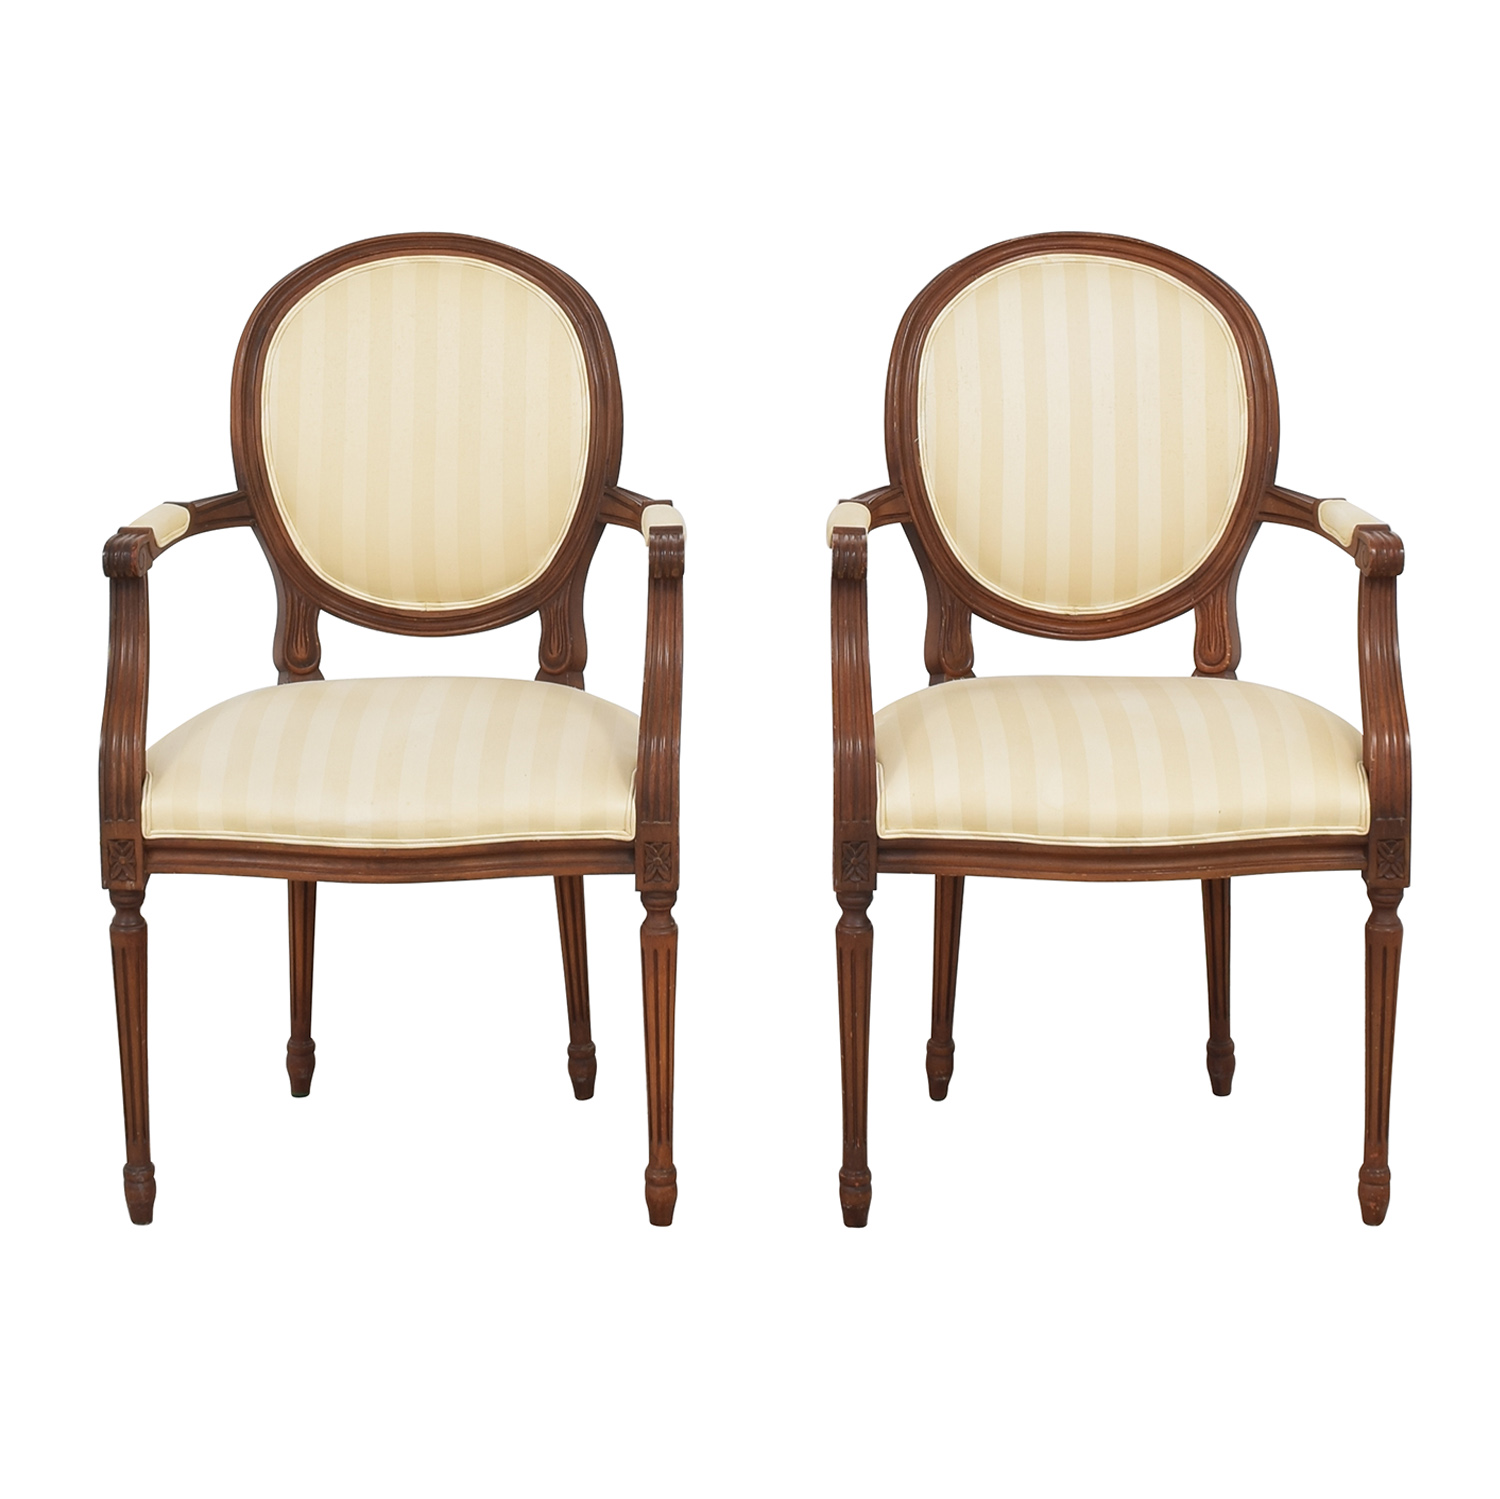 Louis XVI Style Dining Chairs on sale